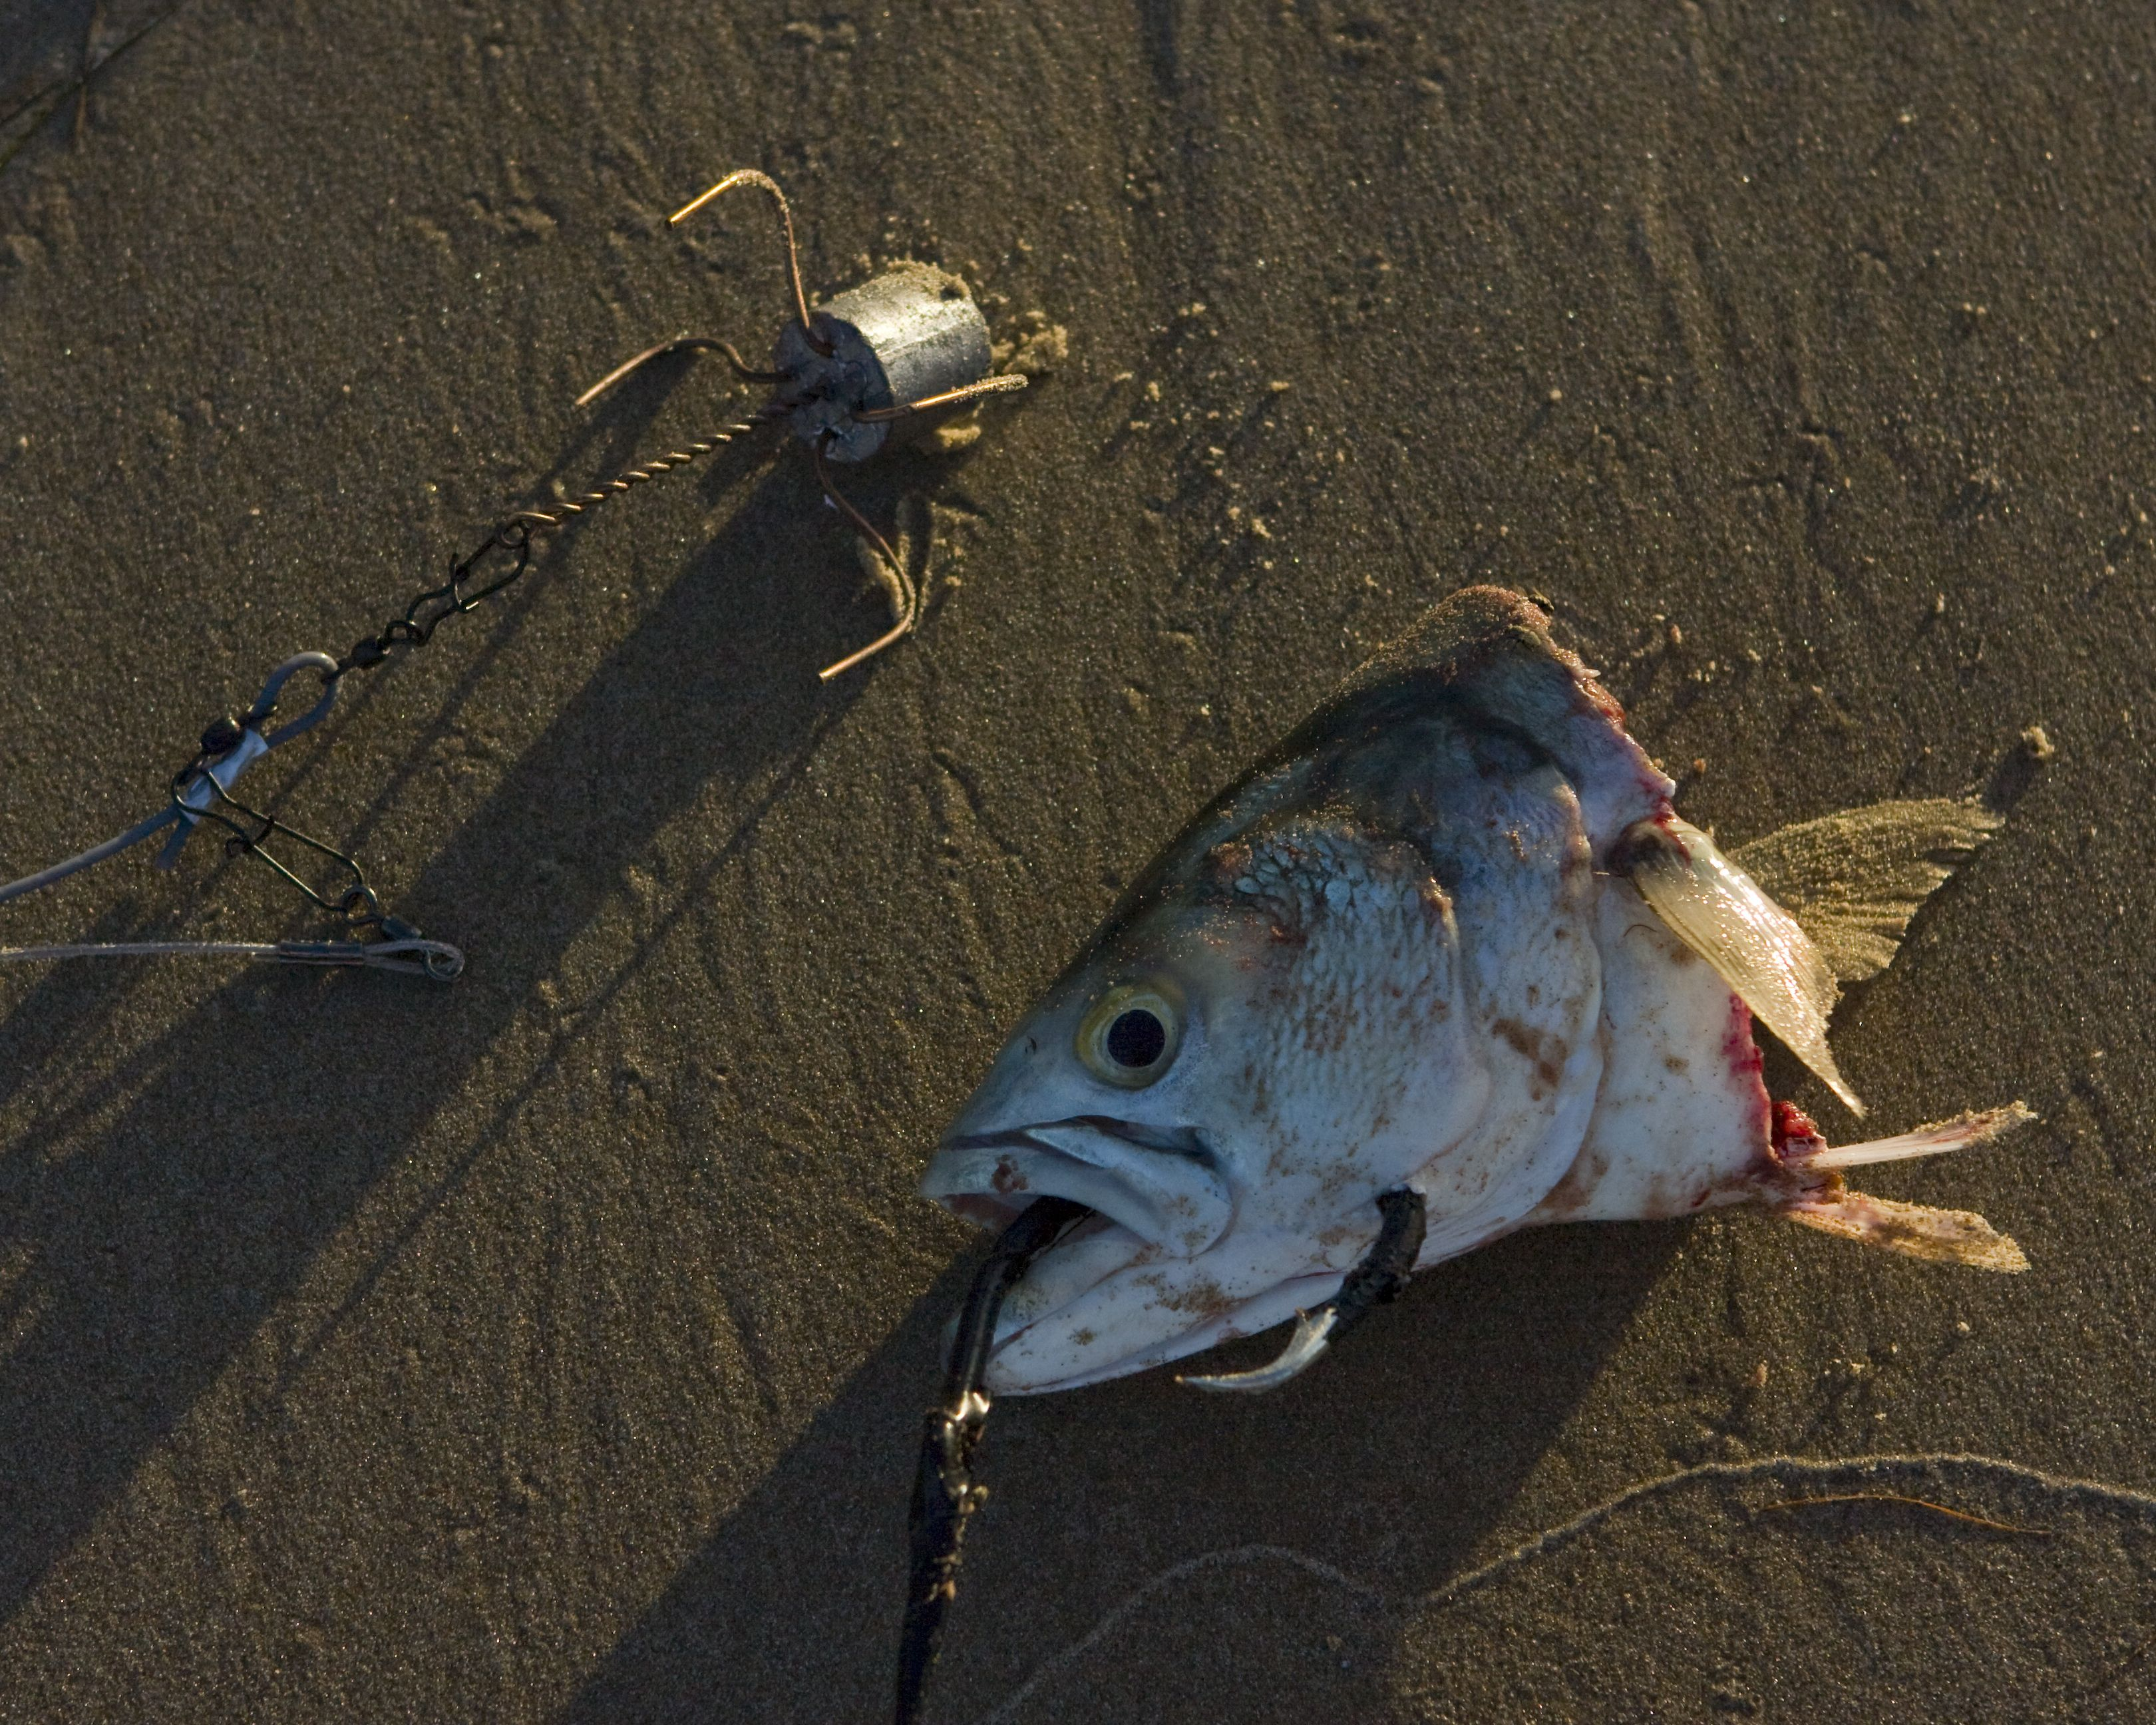 Shark fishing rig with perfect bait saltwater fishing for Surf fishing for sharks